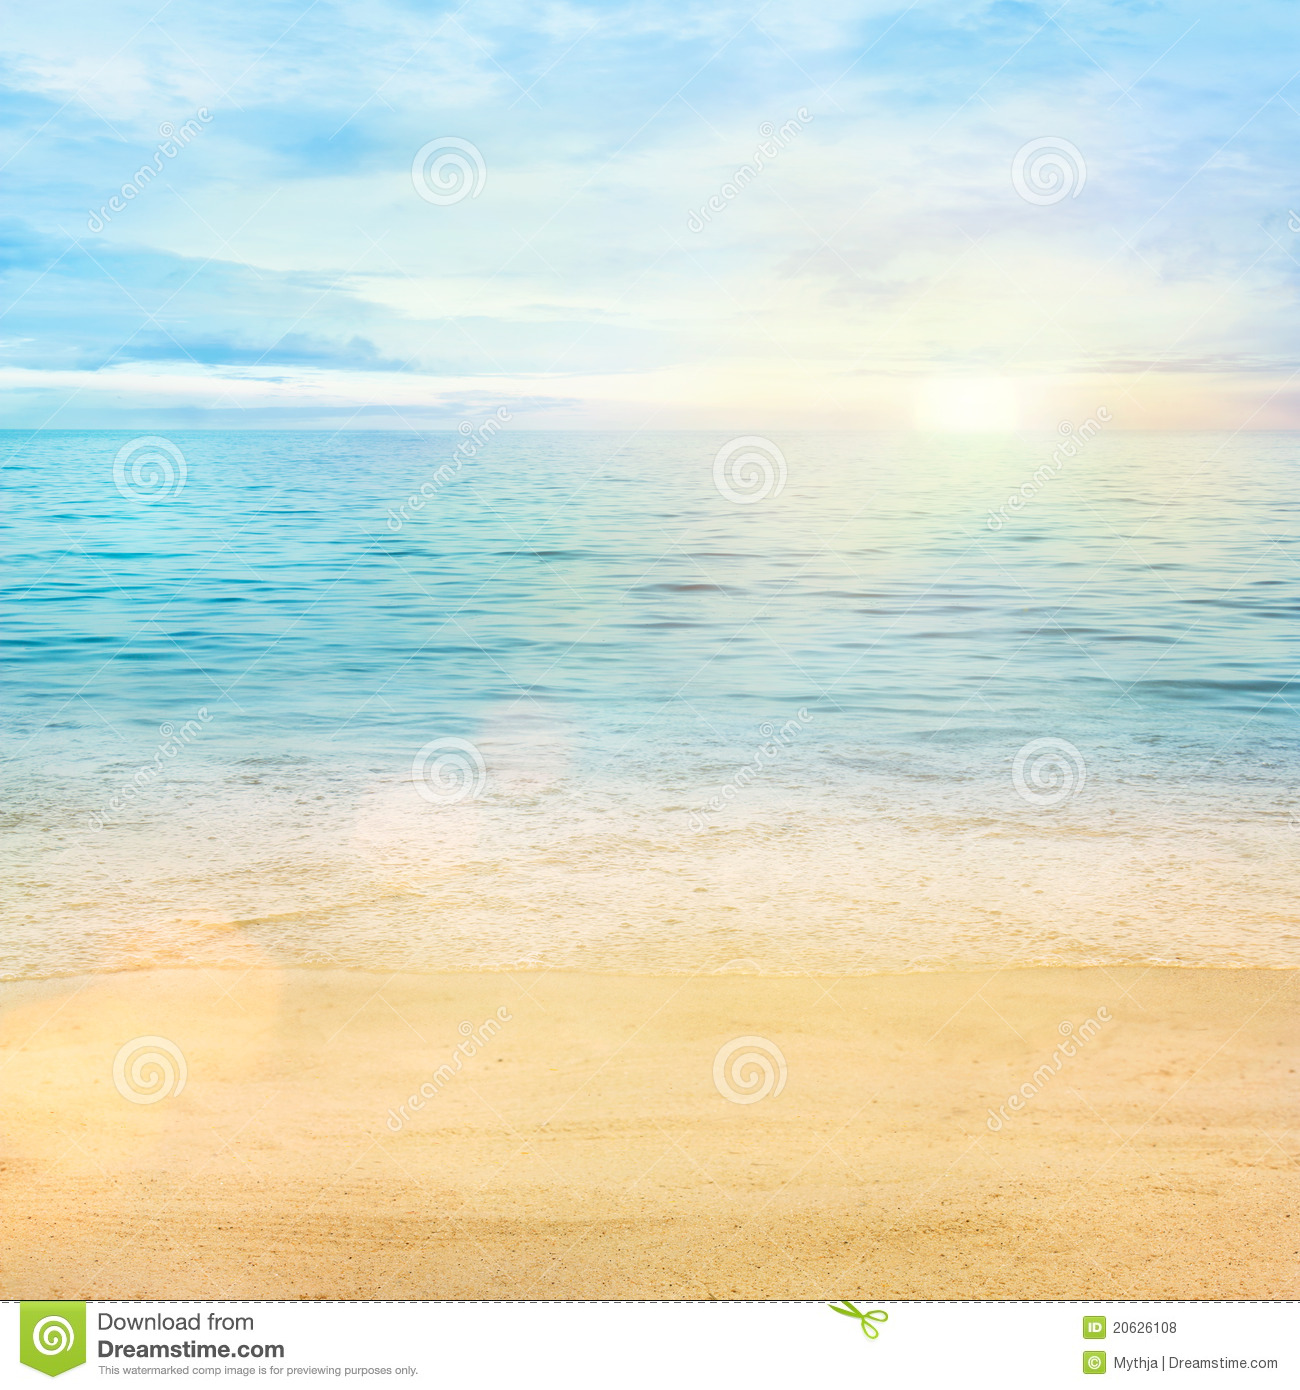 Sea And Sand Background Royalty Free Stock Photos.